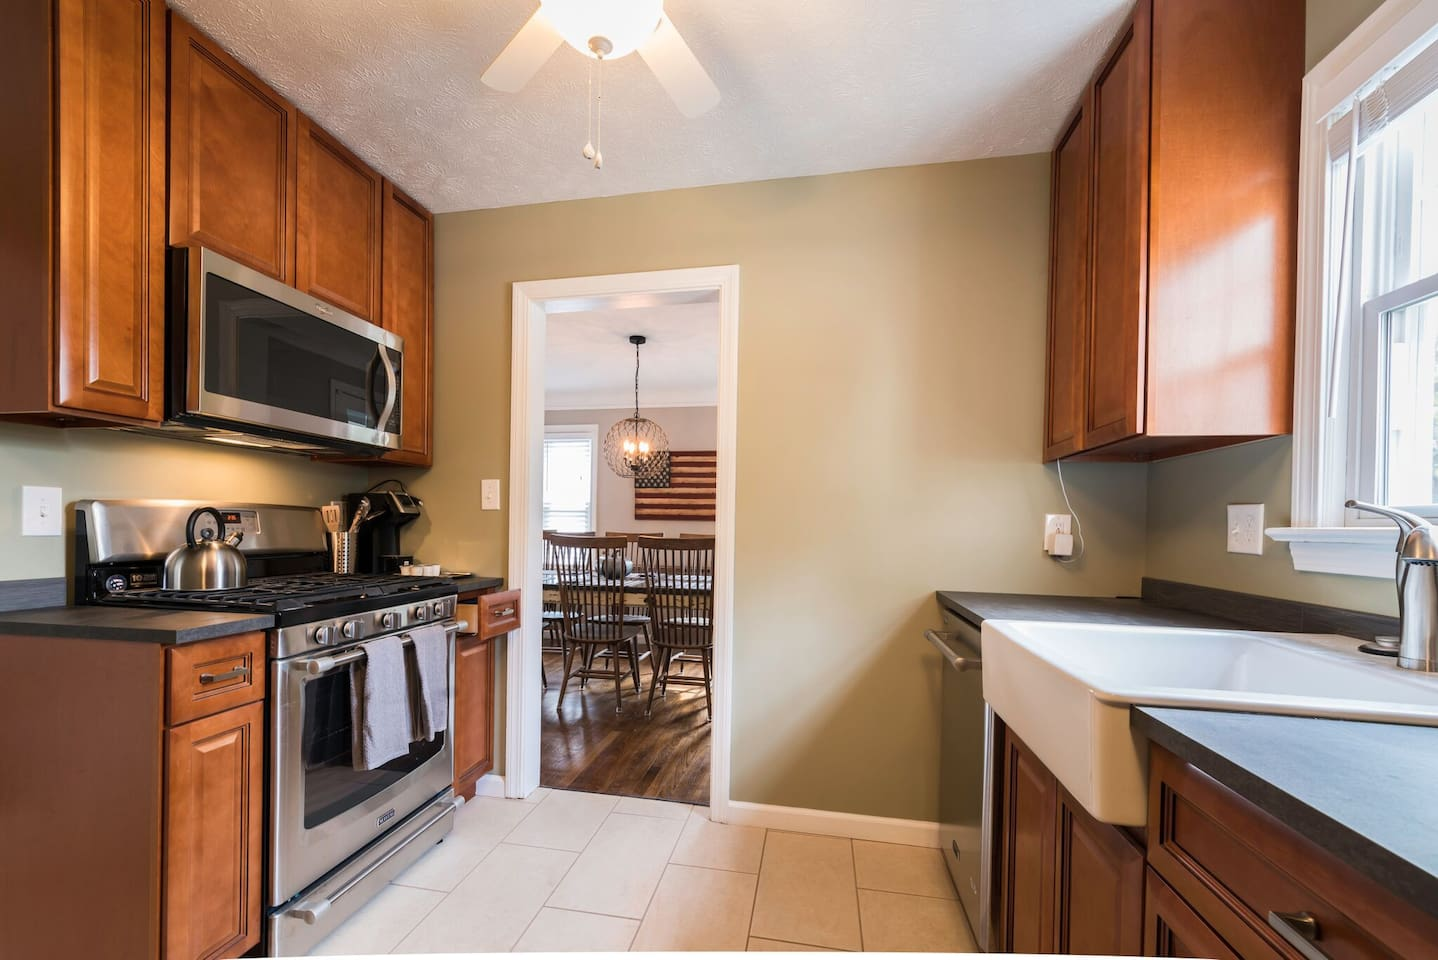 Enjoy cooking with family and friends with our completely remodeled kitchen (new applinaces, cabinets, flooring, pots, pans, cutlery and glassware). The kitchen is stocked with just about anything you can think of...please feel free to ask us for more details!